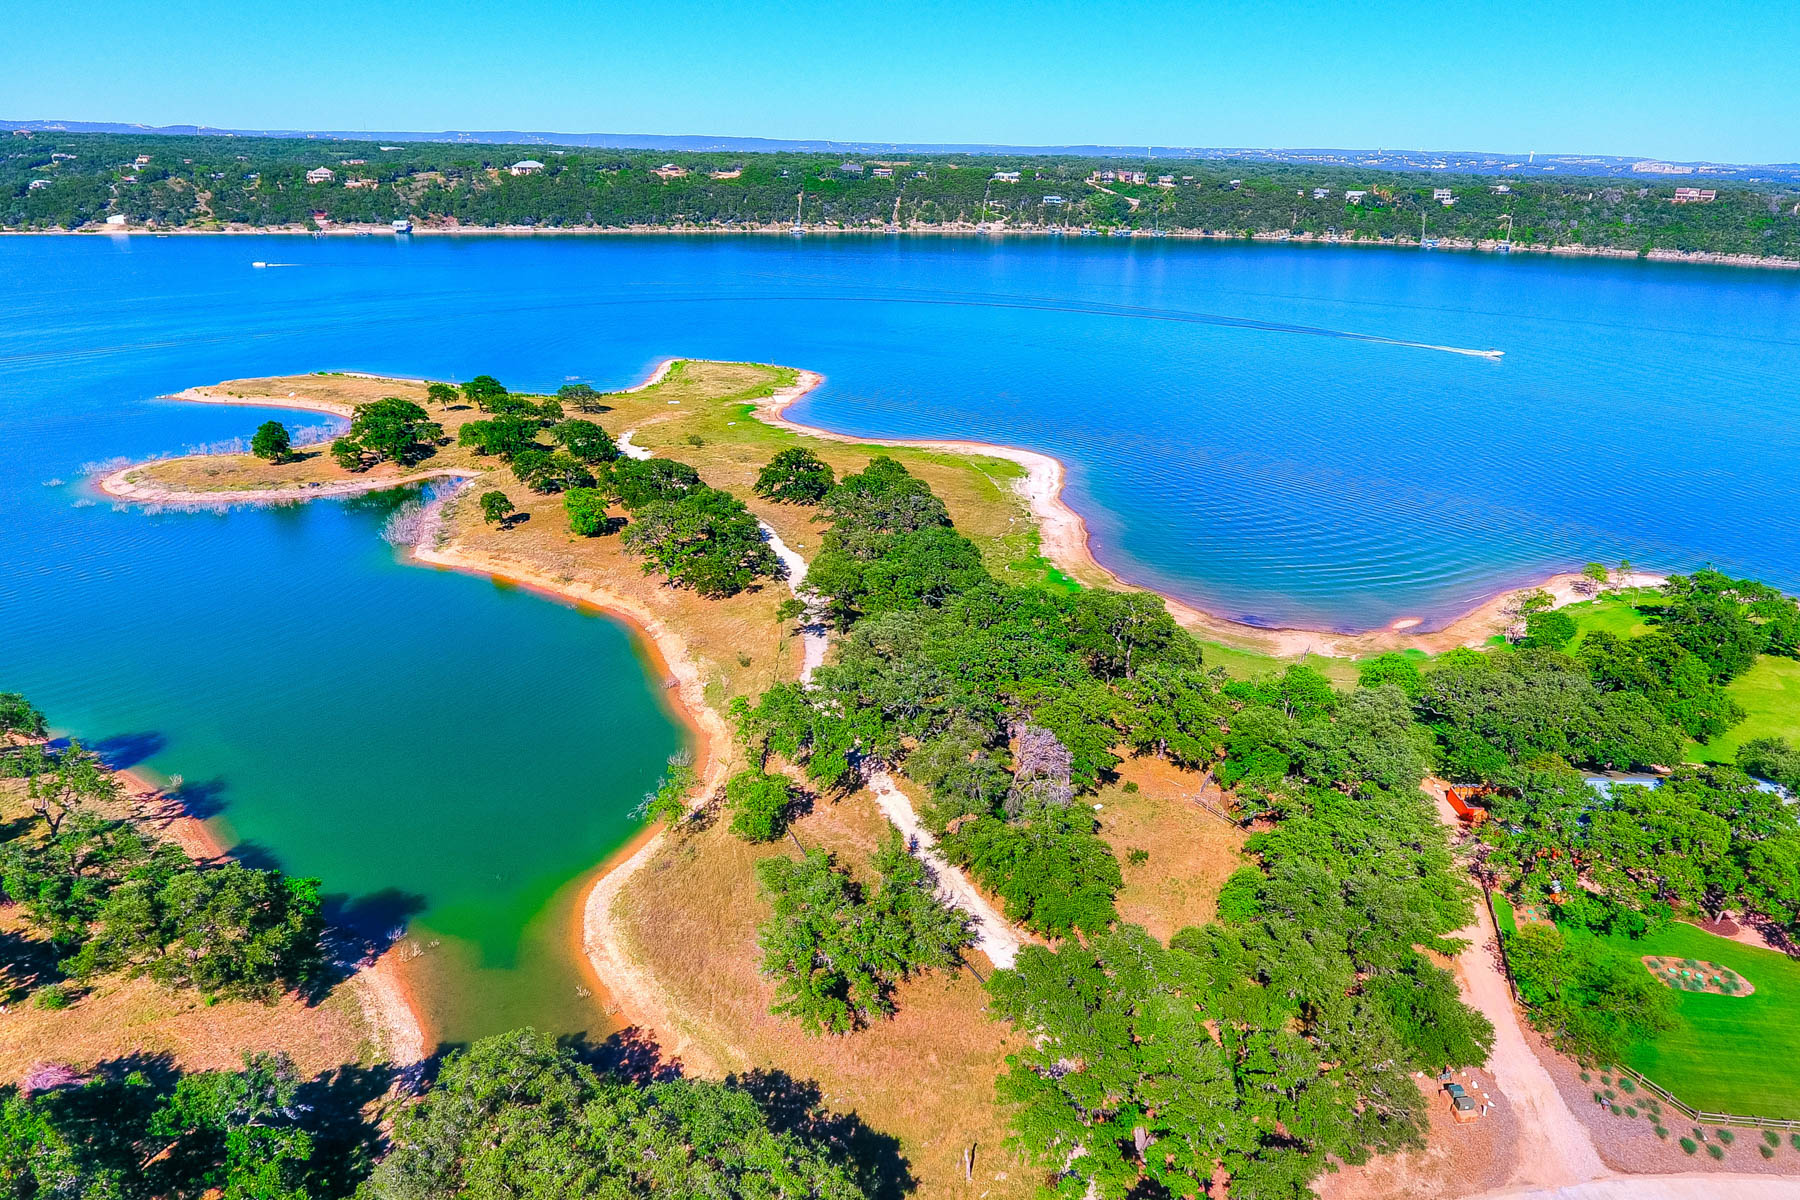 Terreno por un Venta en The Reserve on Lake Travis: 5.87 Waterfront Acres 2208 Cypress Club Pointe Spicewood, Texas 78669 Estados Unidos